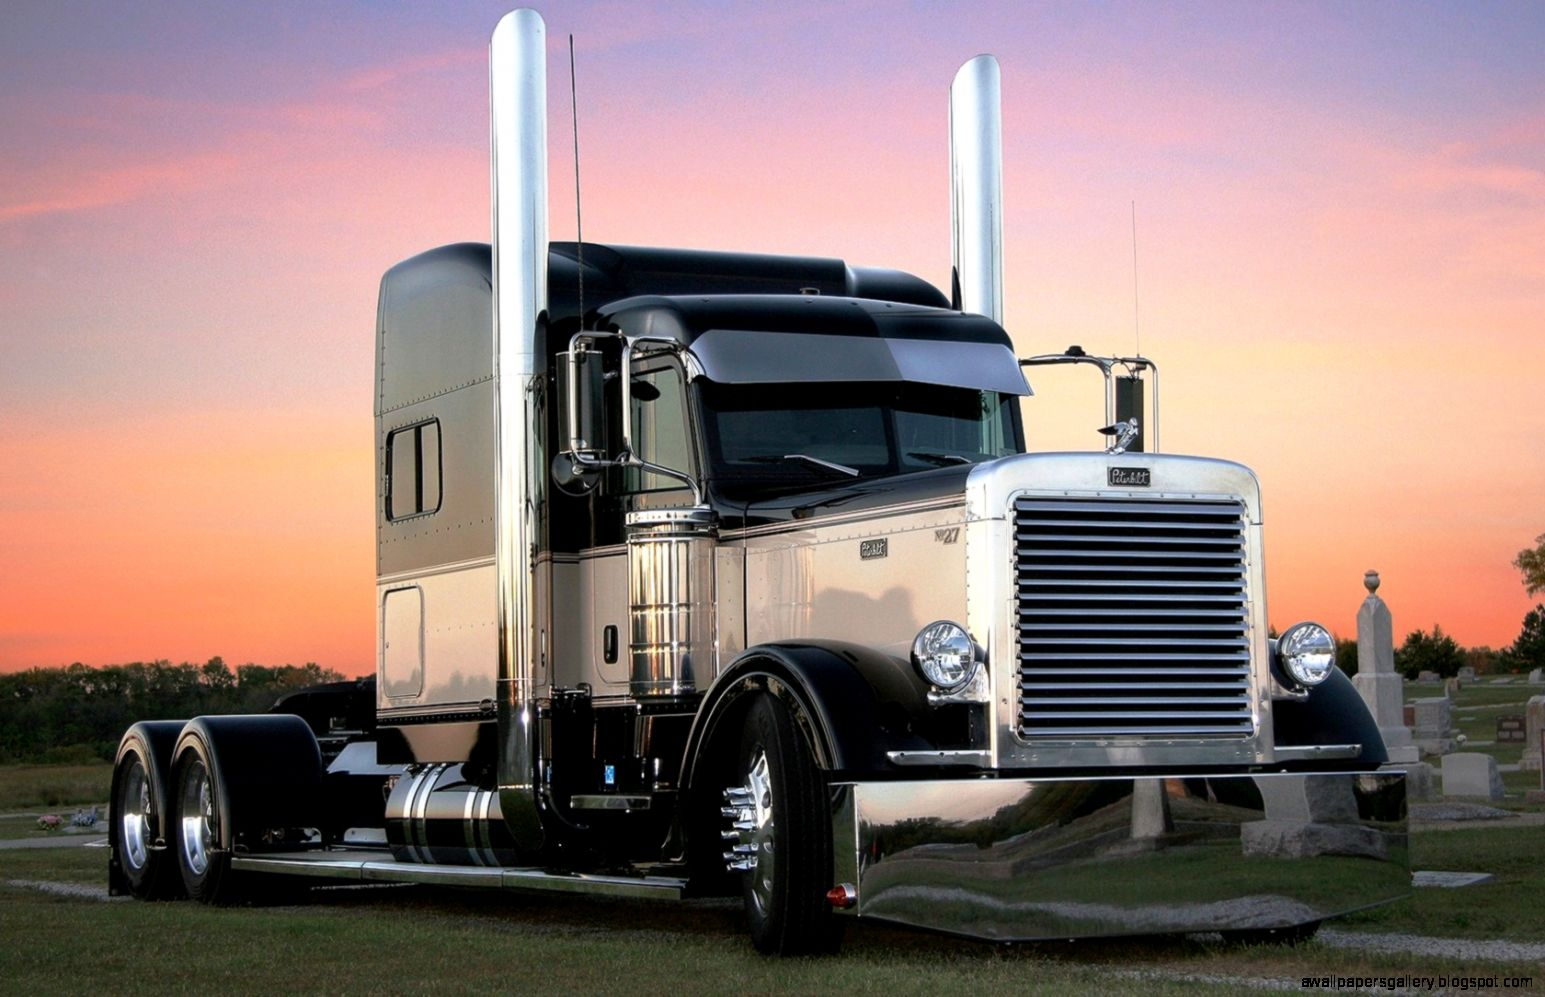 used peterbilt trucks wallpapers gallery. Black Bedroom Furniture Sets. Home Design Ideas